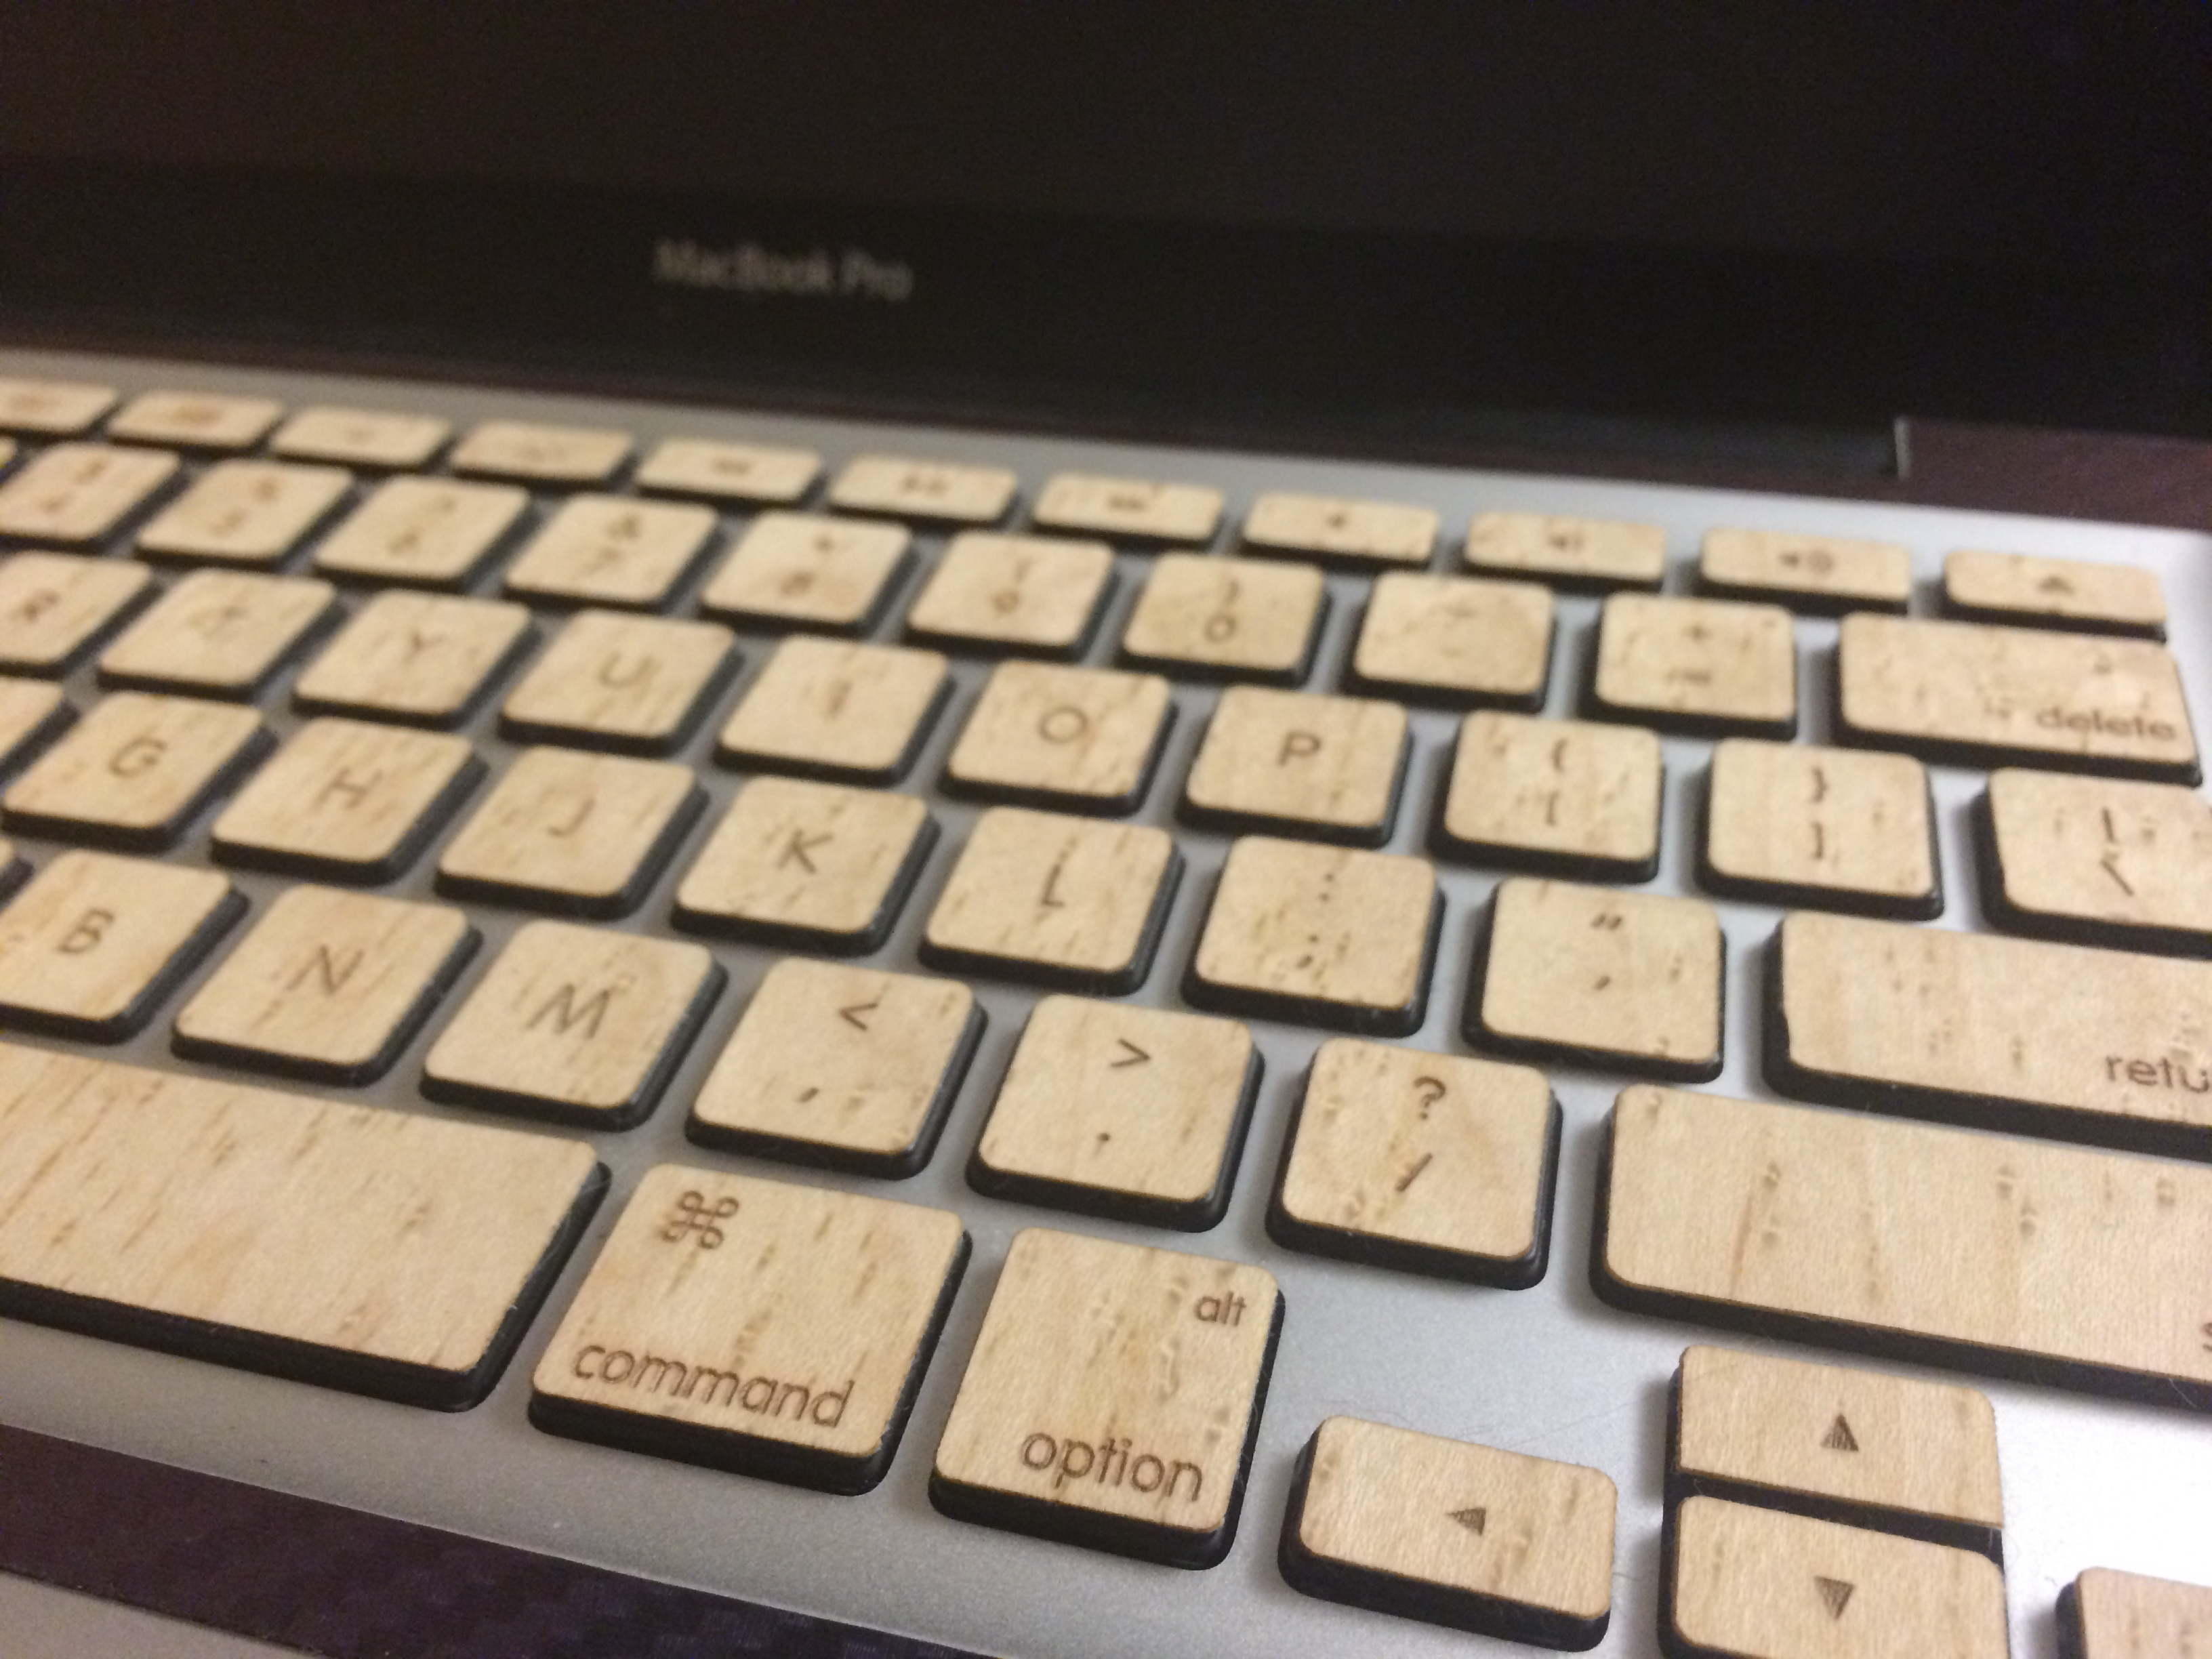 Wooden Macbook Keys (with backlight functionality)